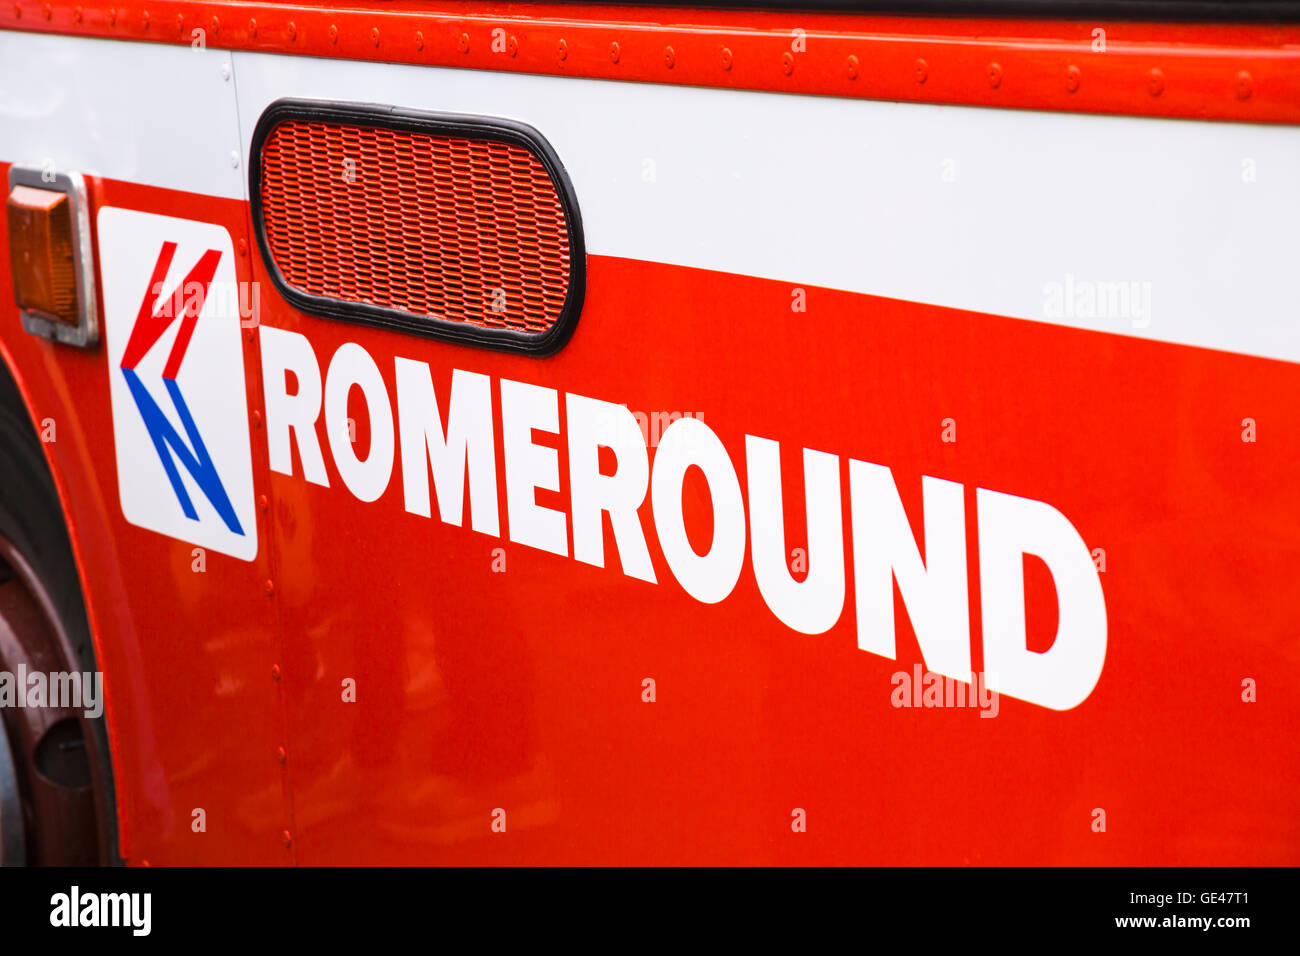 Romeround and logo on side of old bus at Poole to celebrate Hants & Dorset (More Bus) centenary in July - Stock Image